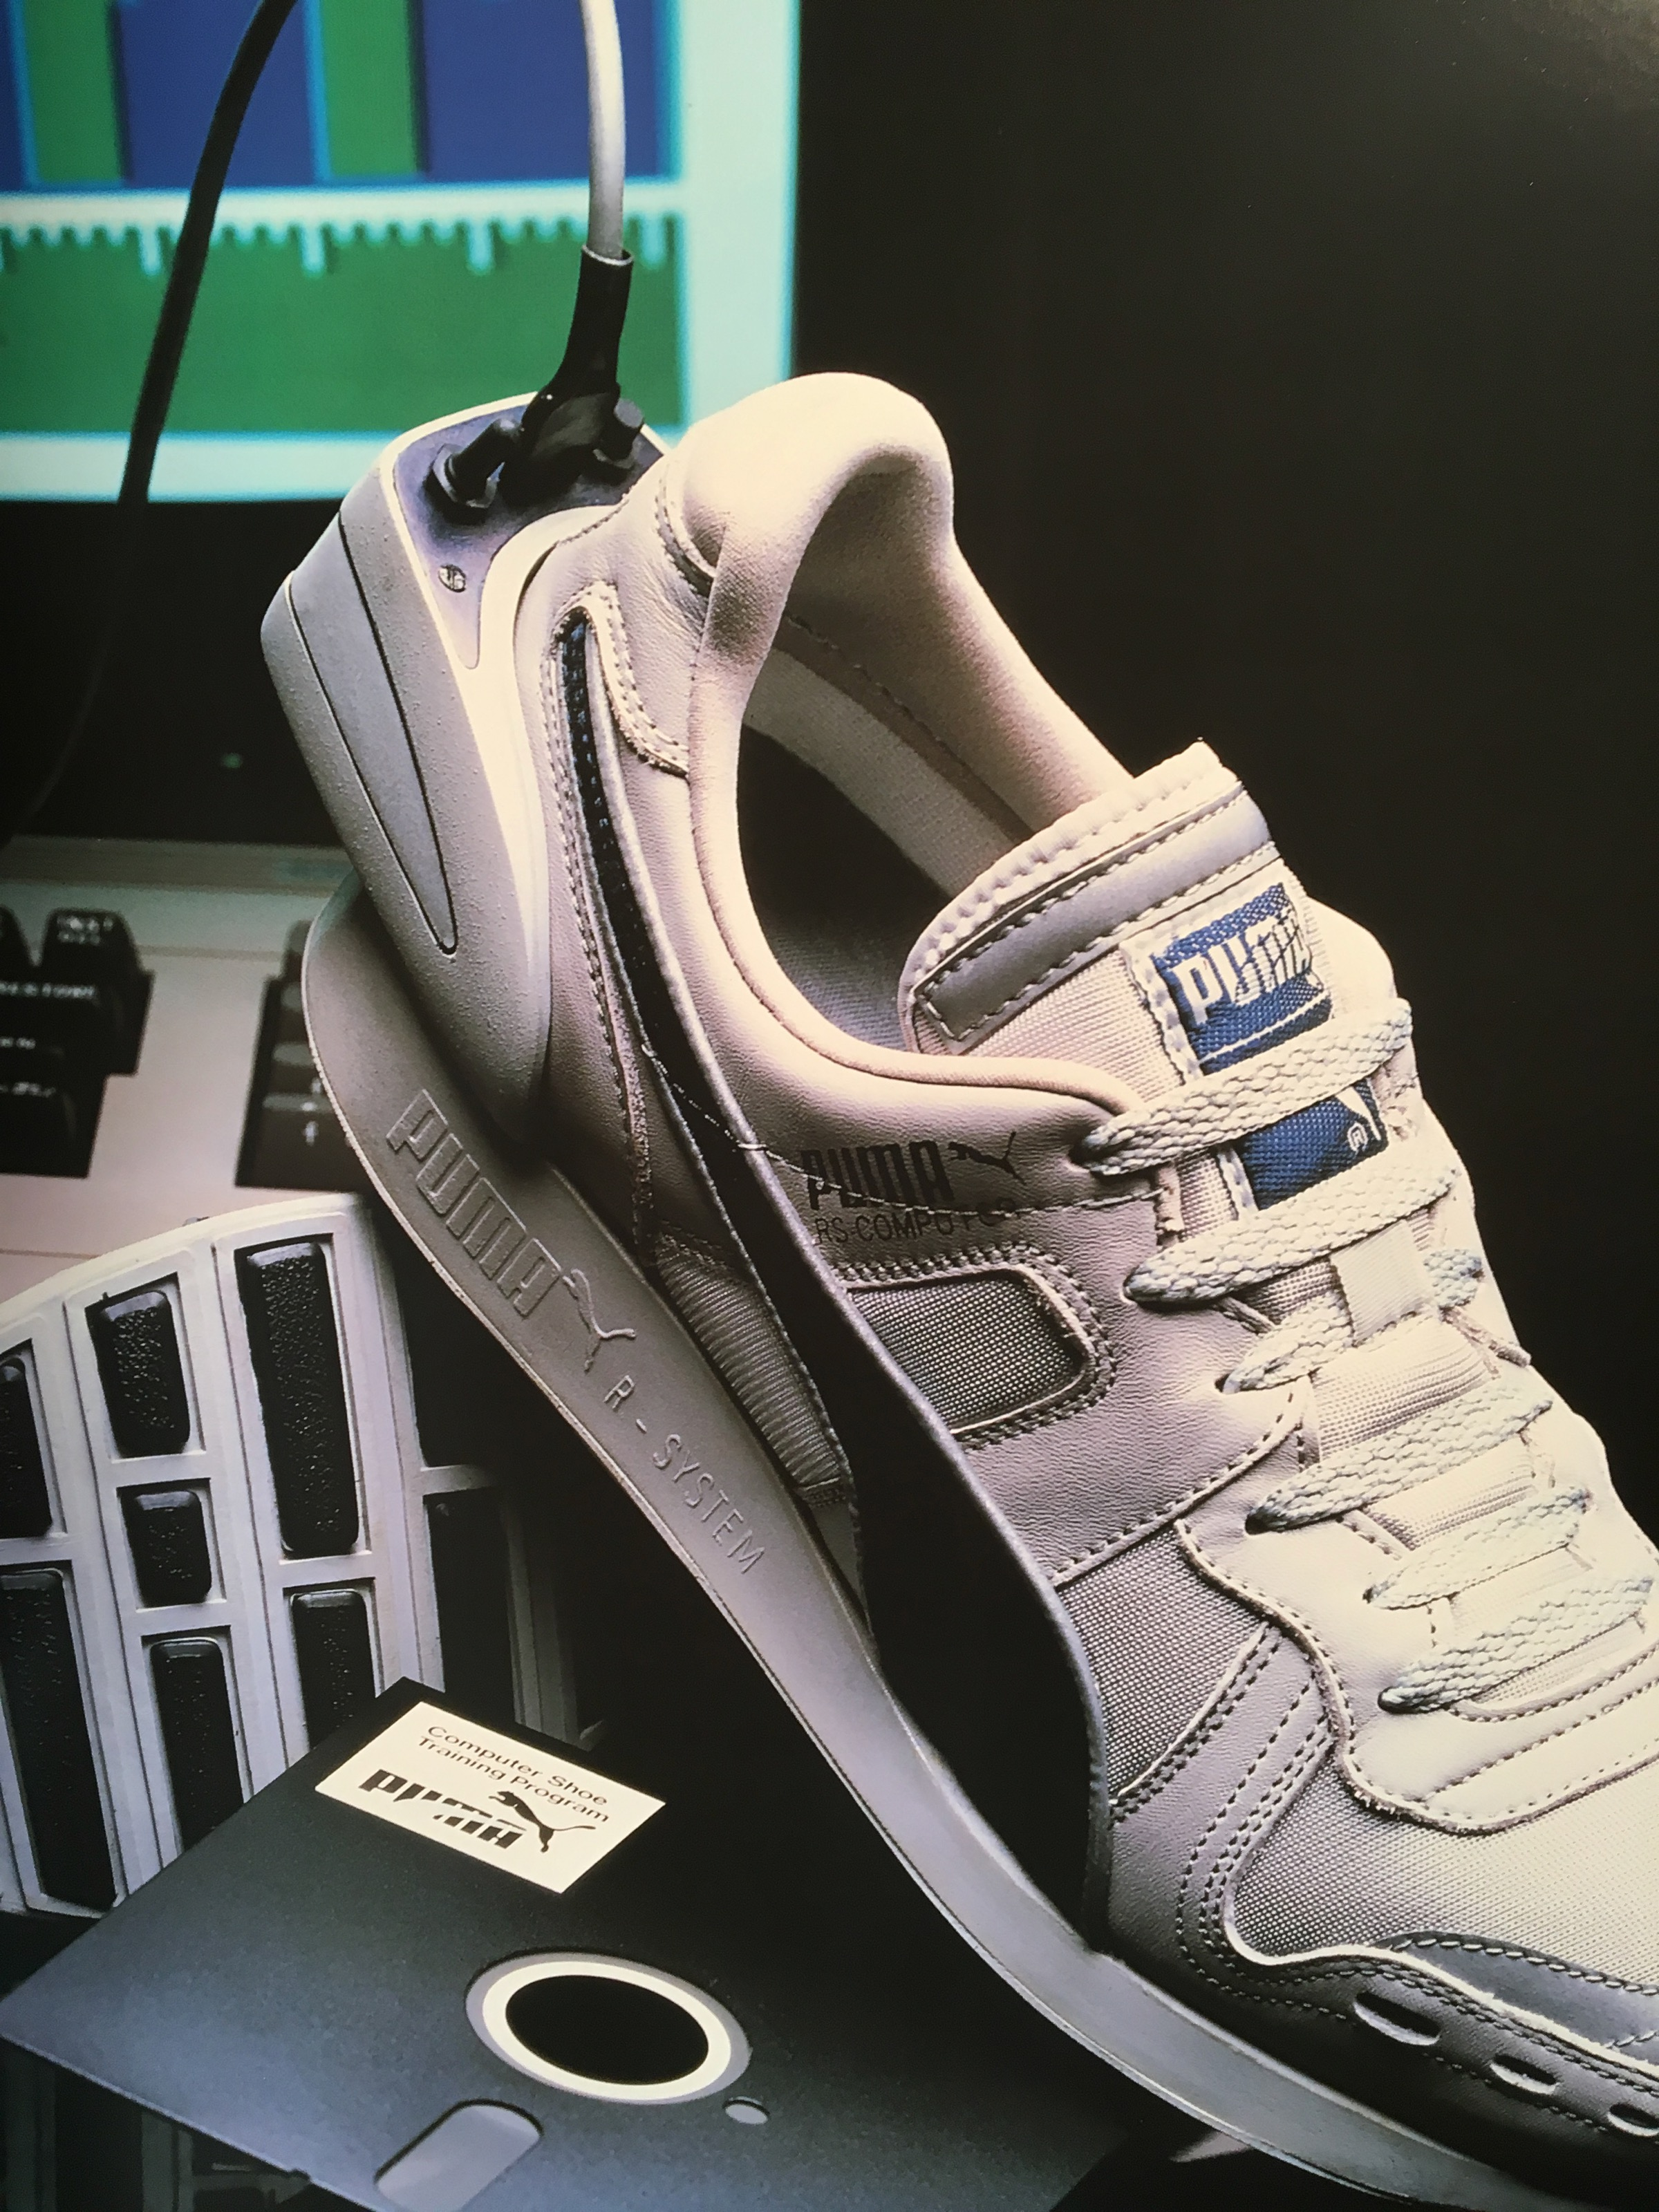 6c68f86b62c0 The Roland TR-808 is getting its own pair of Puma shoes - CDM Create ...